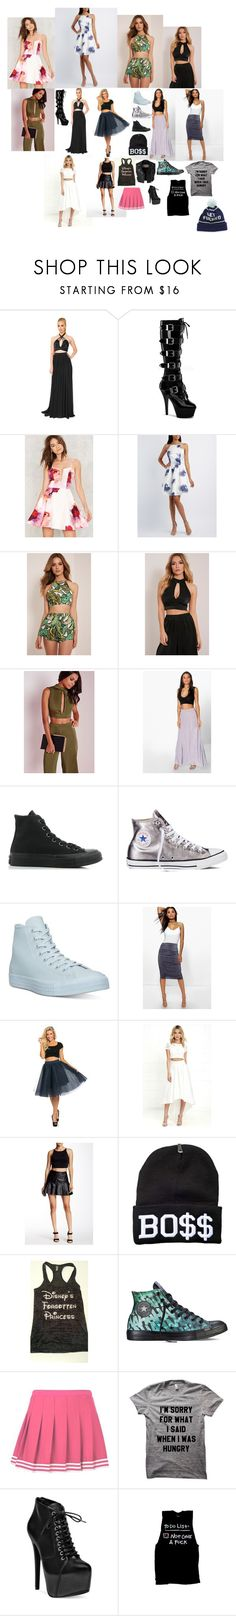 """my wardrobe 18"" by nikoleta-nicky-malik ❤ liked on Polyvore featuring Adolfo Sanchez, Pleaser, Charlotte Russe, Missguided, Boohoo, Converse, Gracia, Scoop, Burberry and Steve Madden"